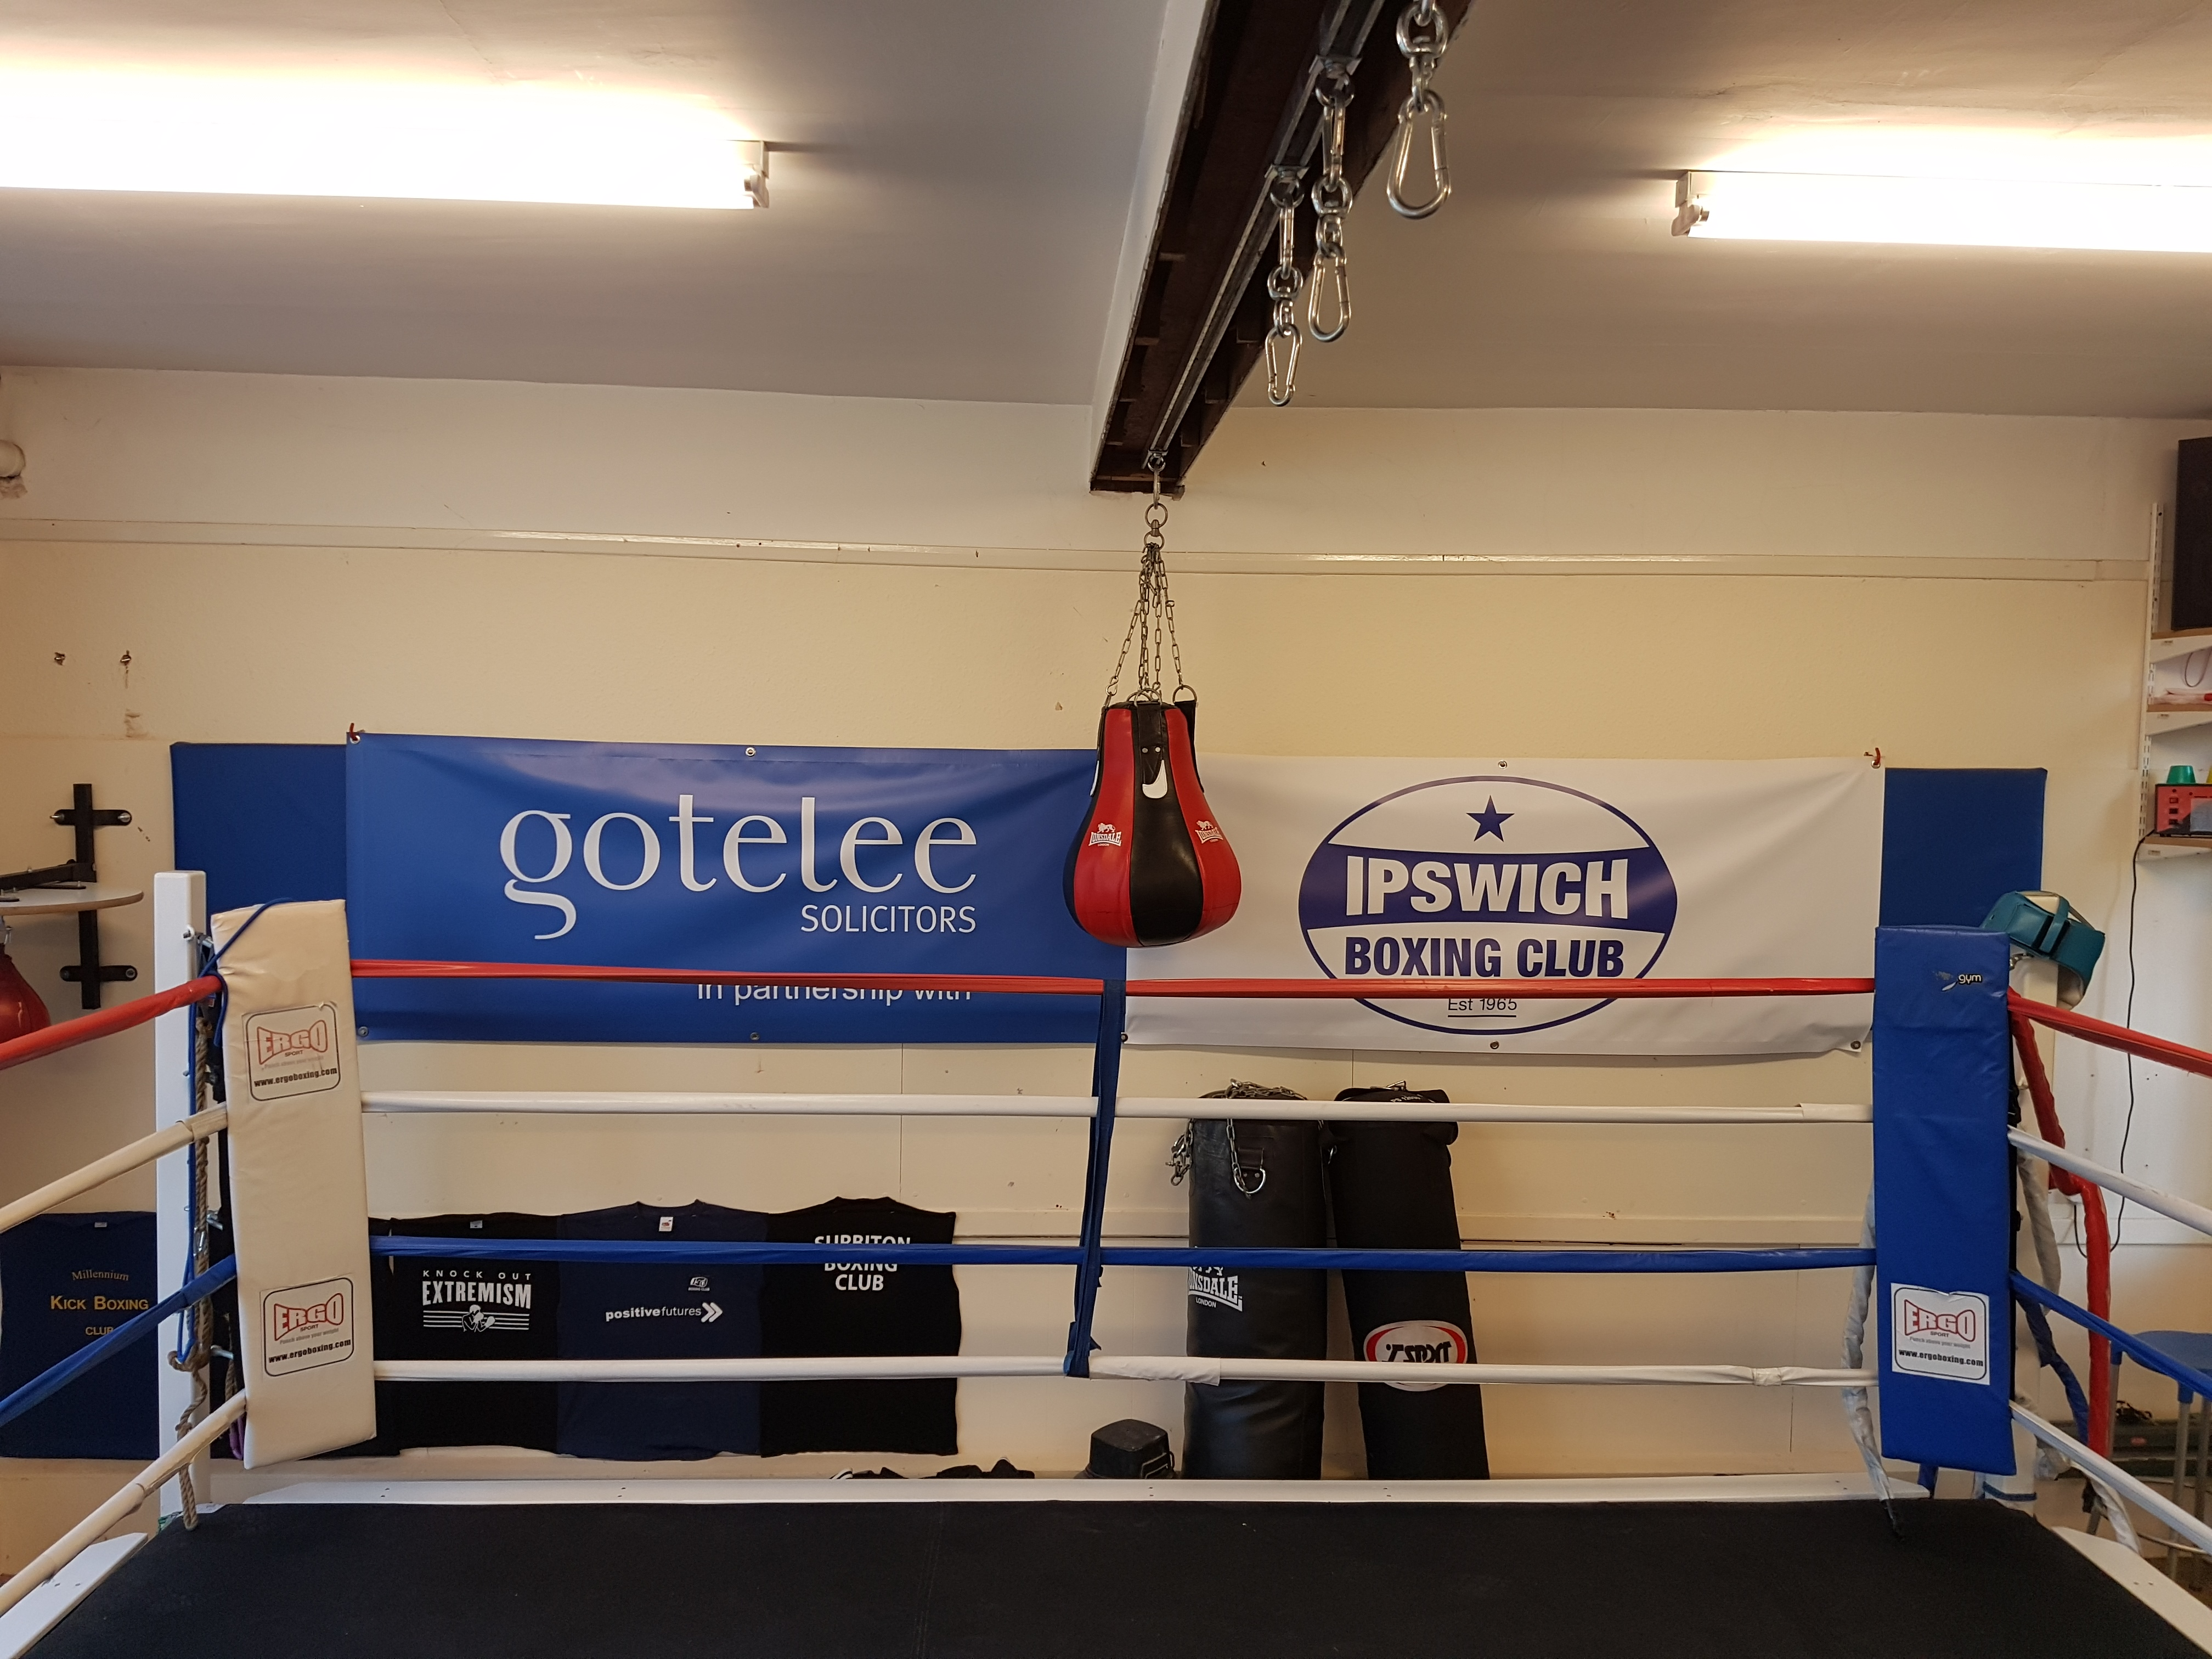 Thanks to Gotelee Solicitors